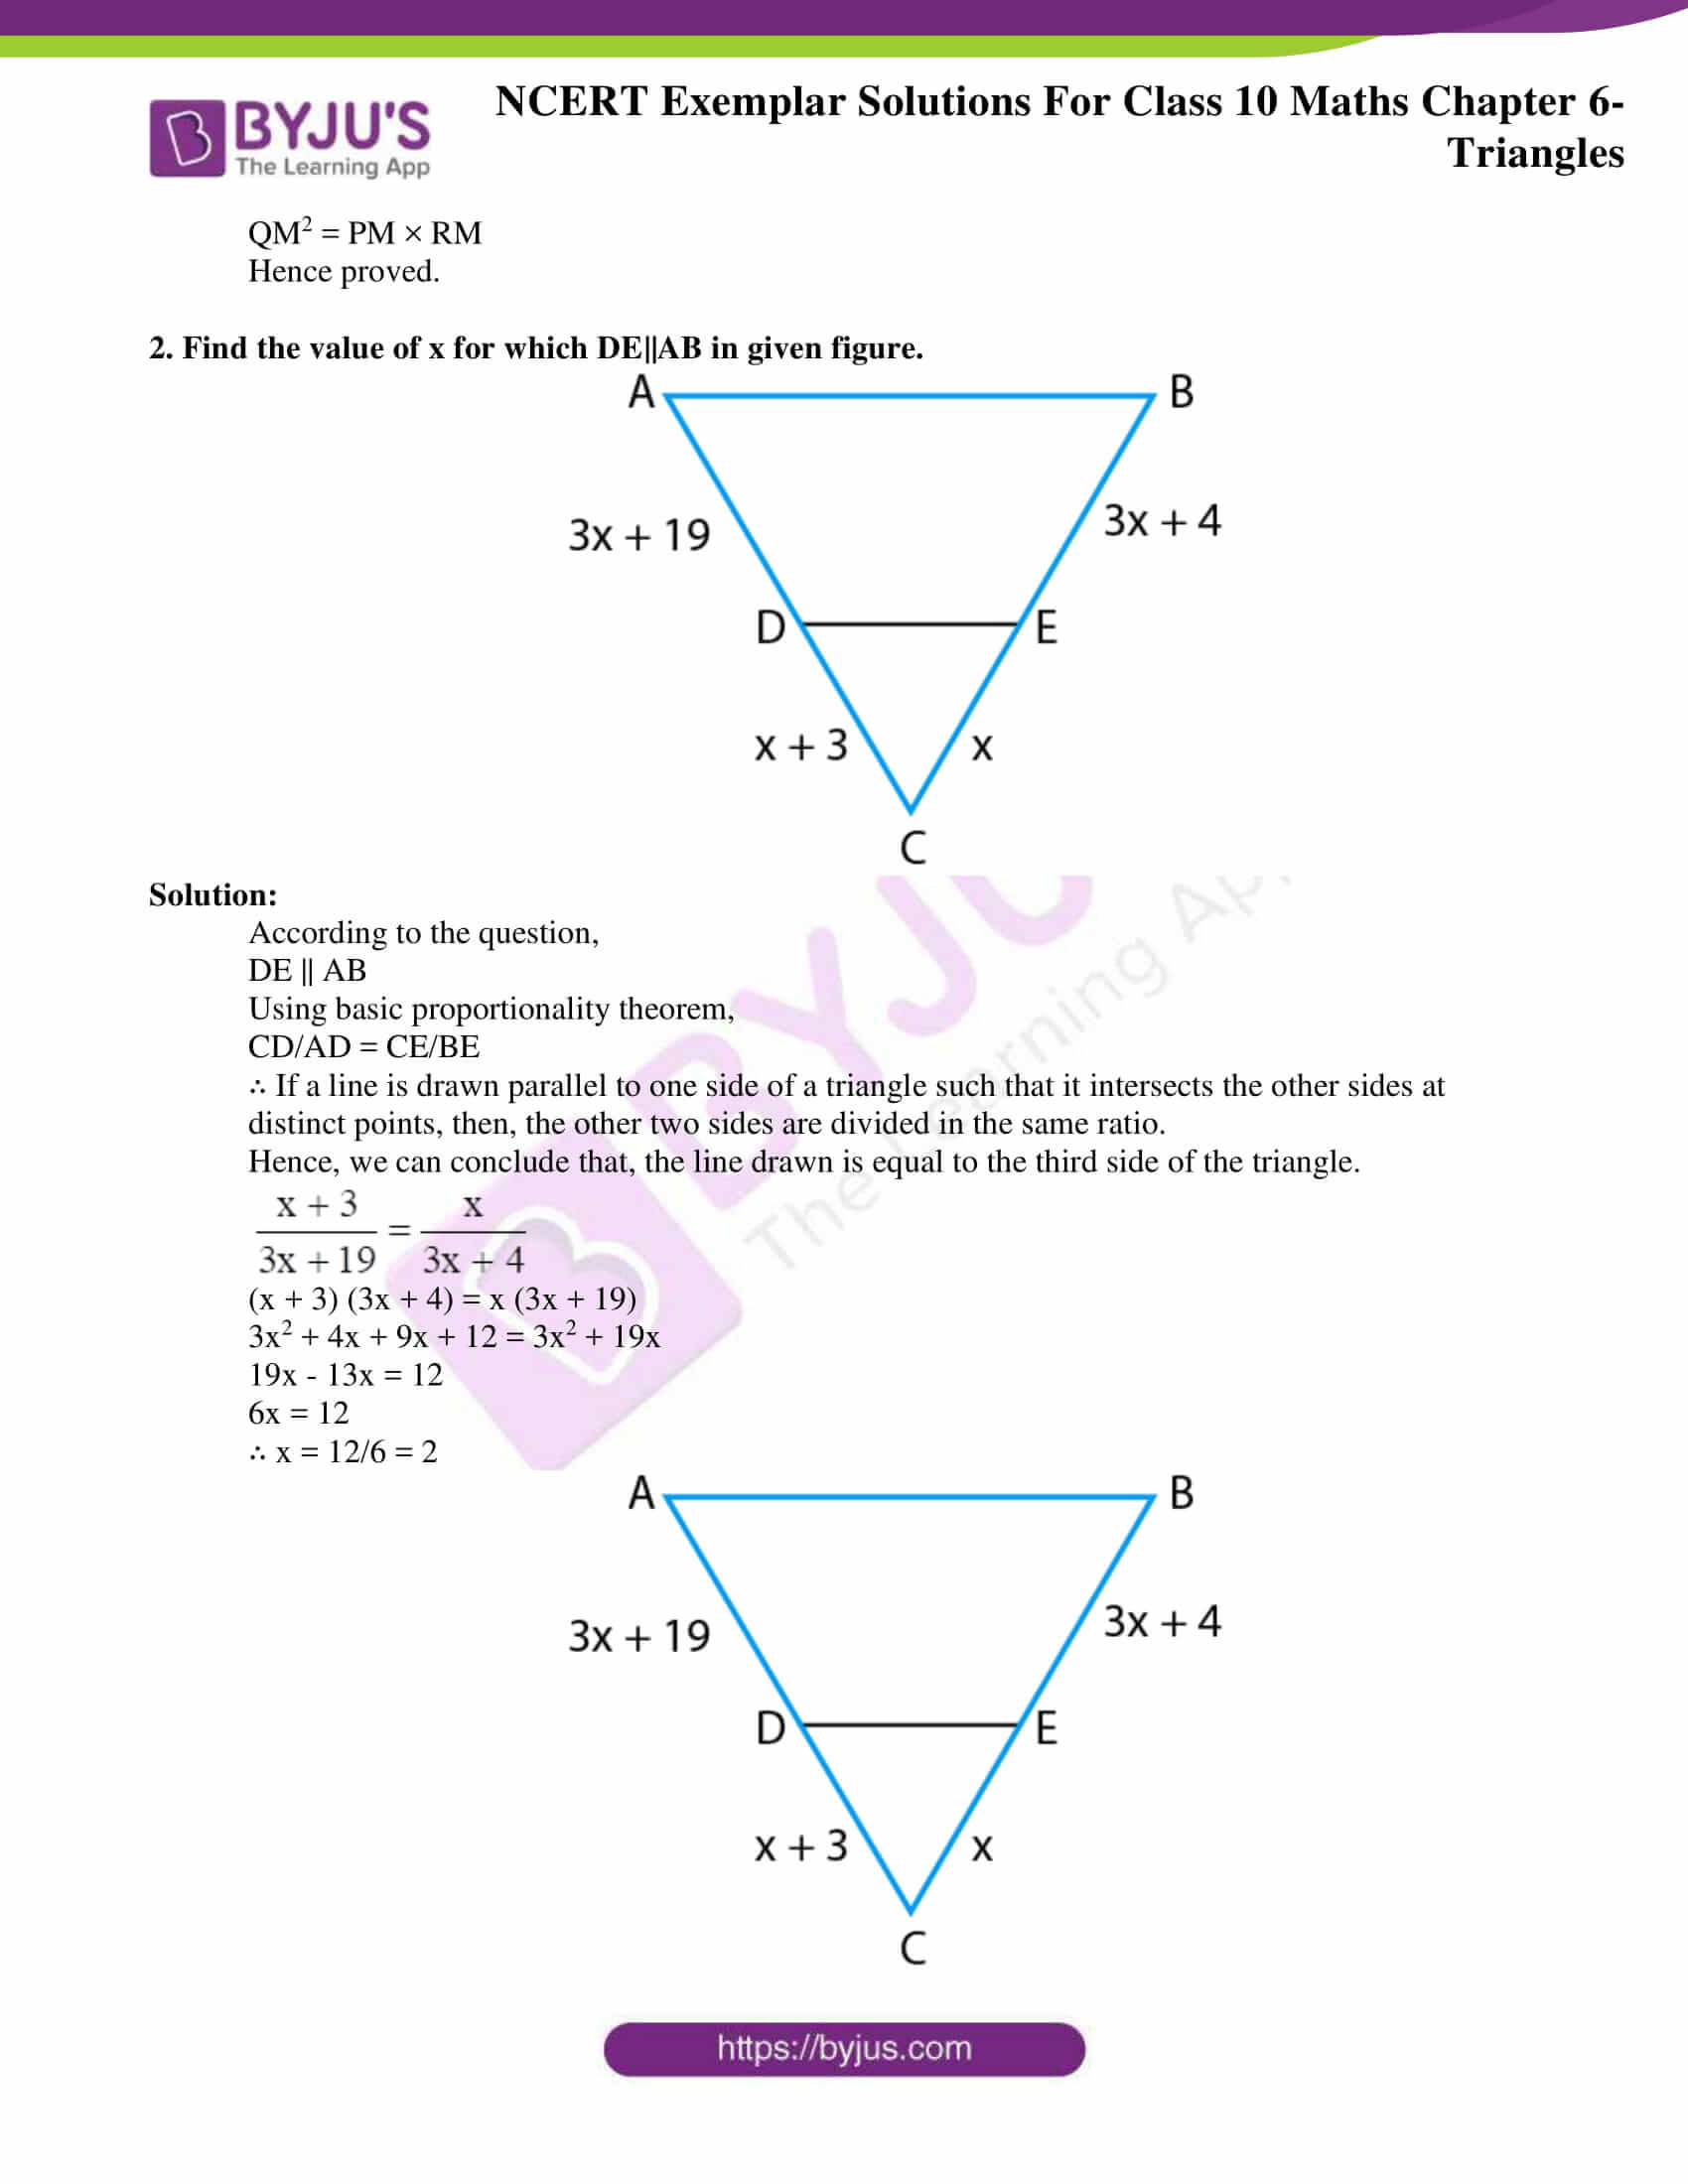 NCERT Exemplar sol Class 10 Maths chapter 6